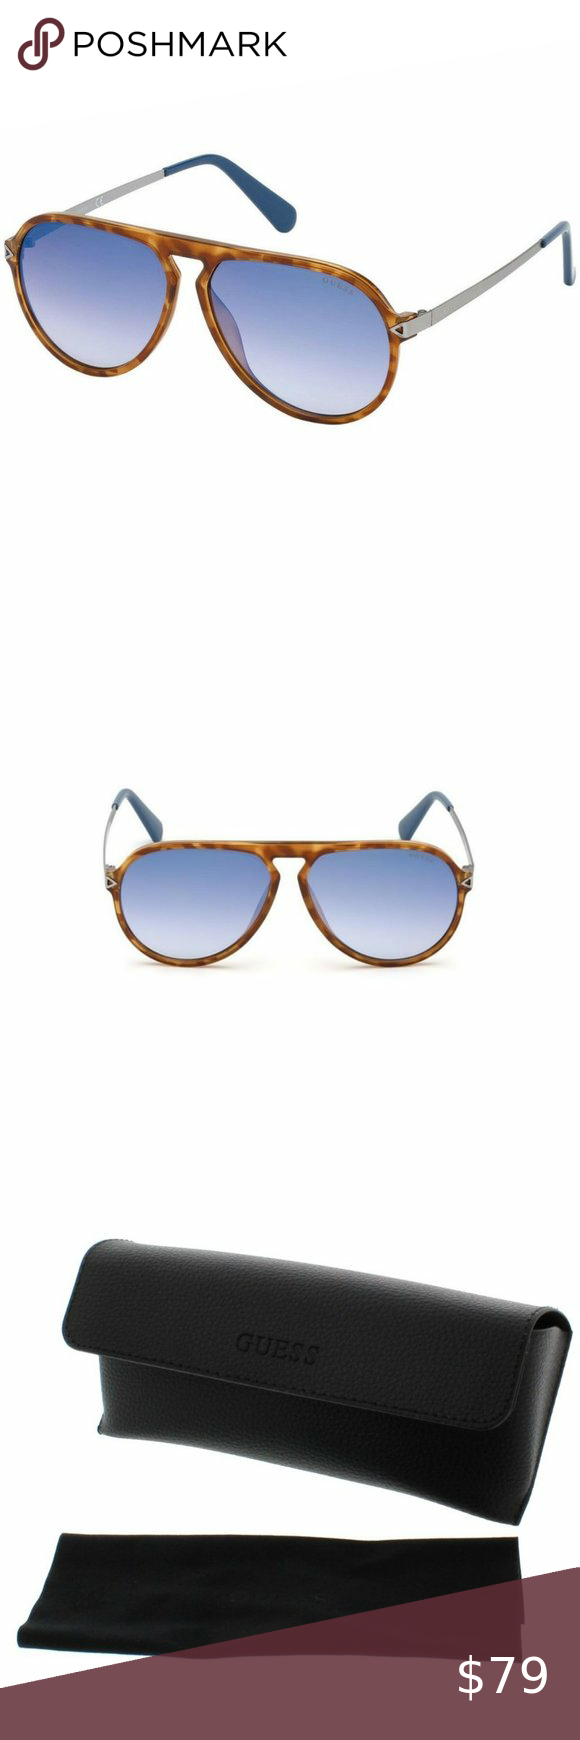 Guess Gu 6941 53w 59 Sunglasses Sunglasses Sunglasses Accessories Guess